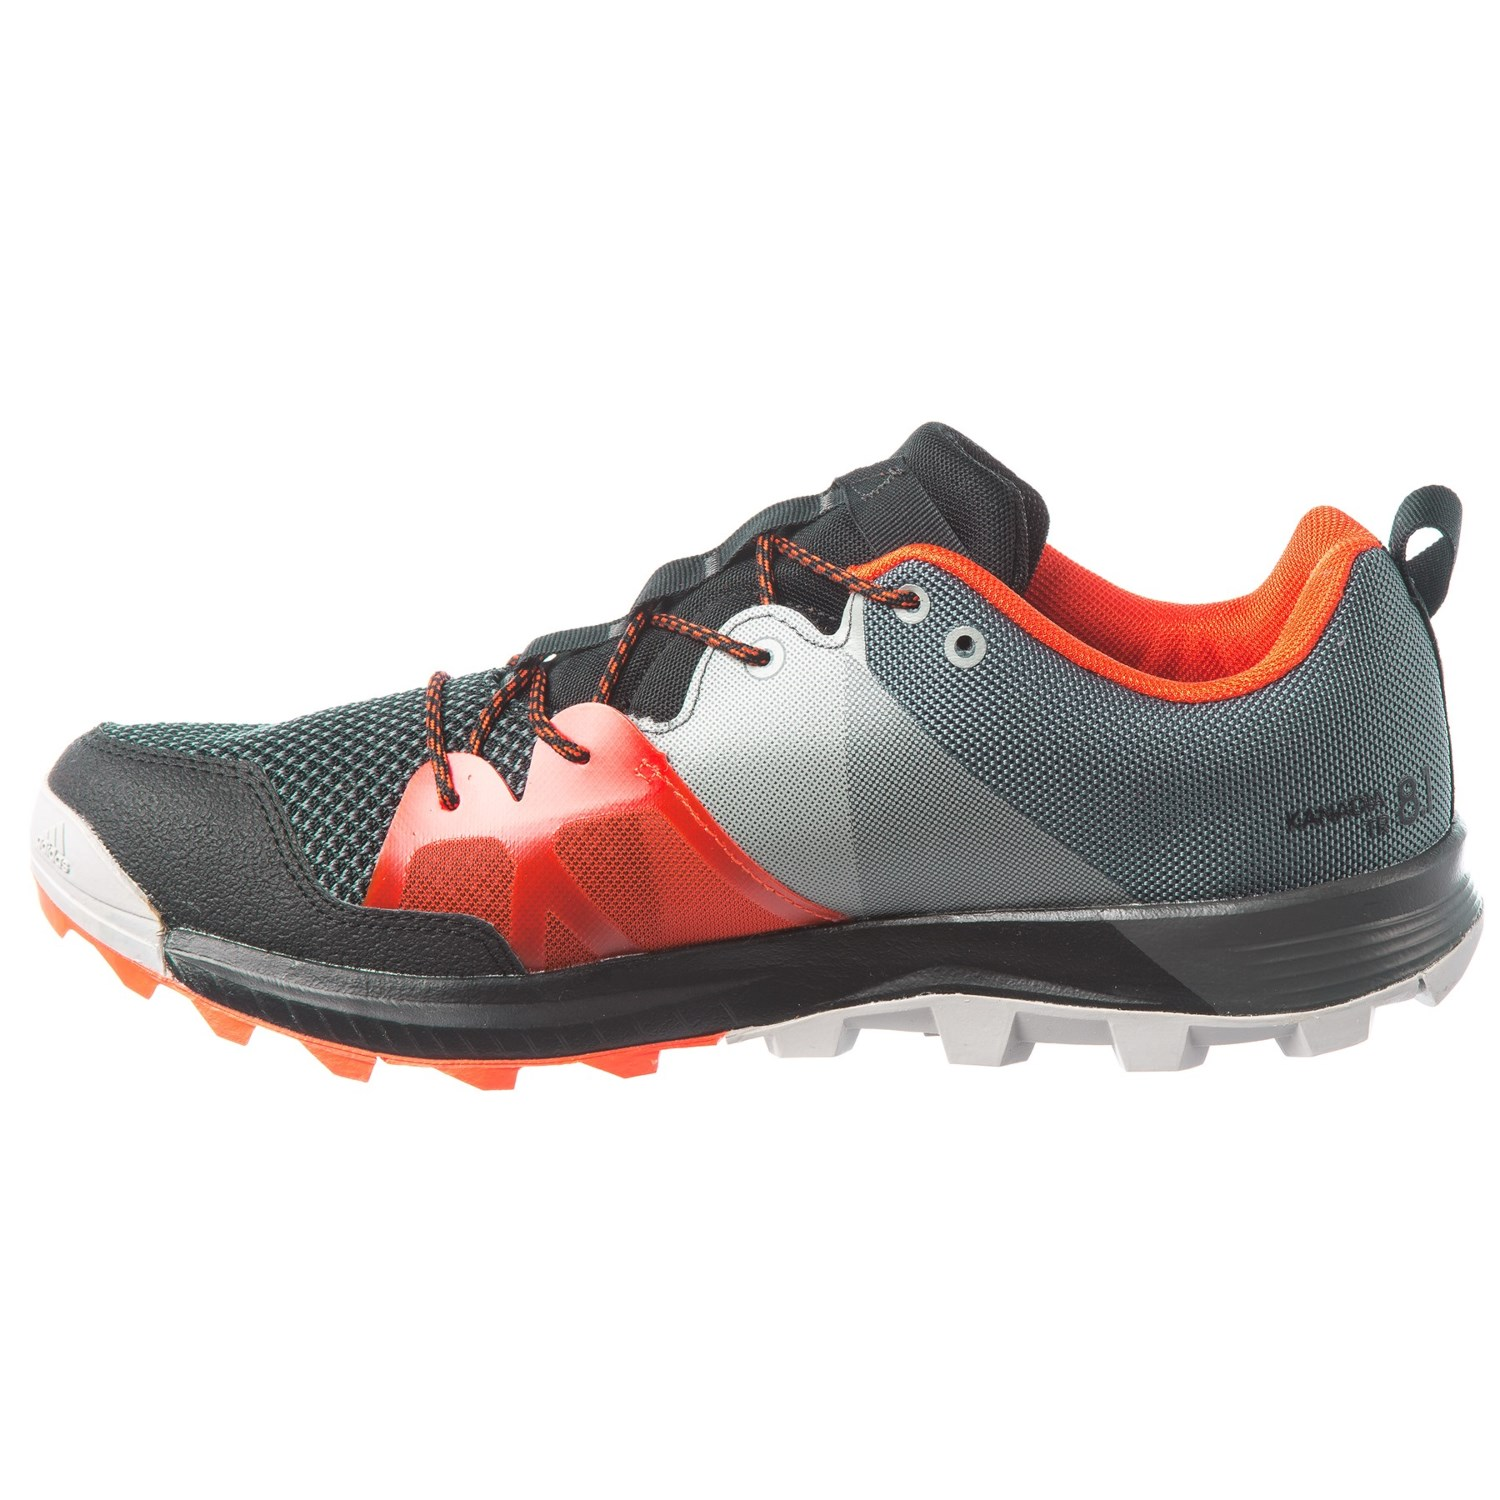 adidas Kanadia 8.1 Trail Running Shoes (For Men) - Save 37%